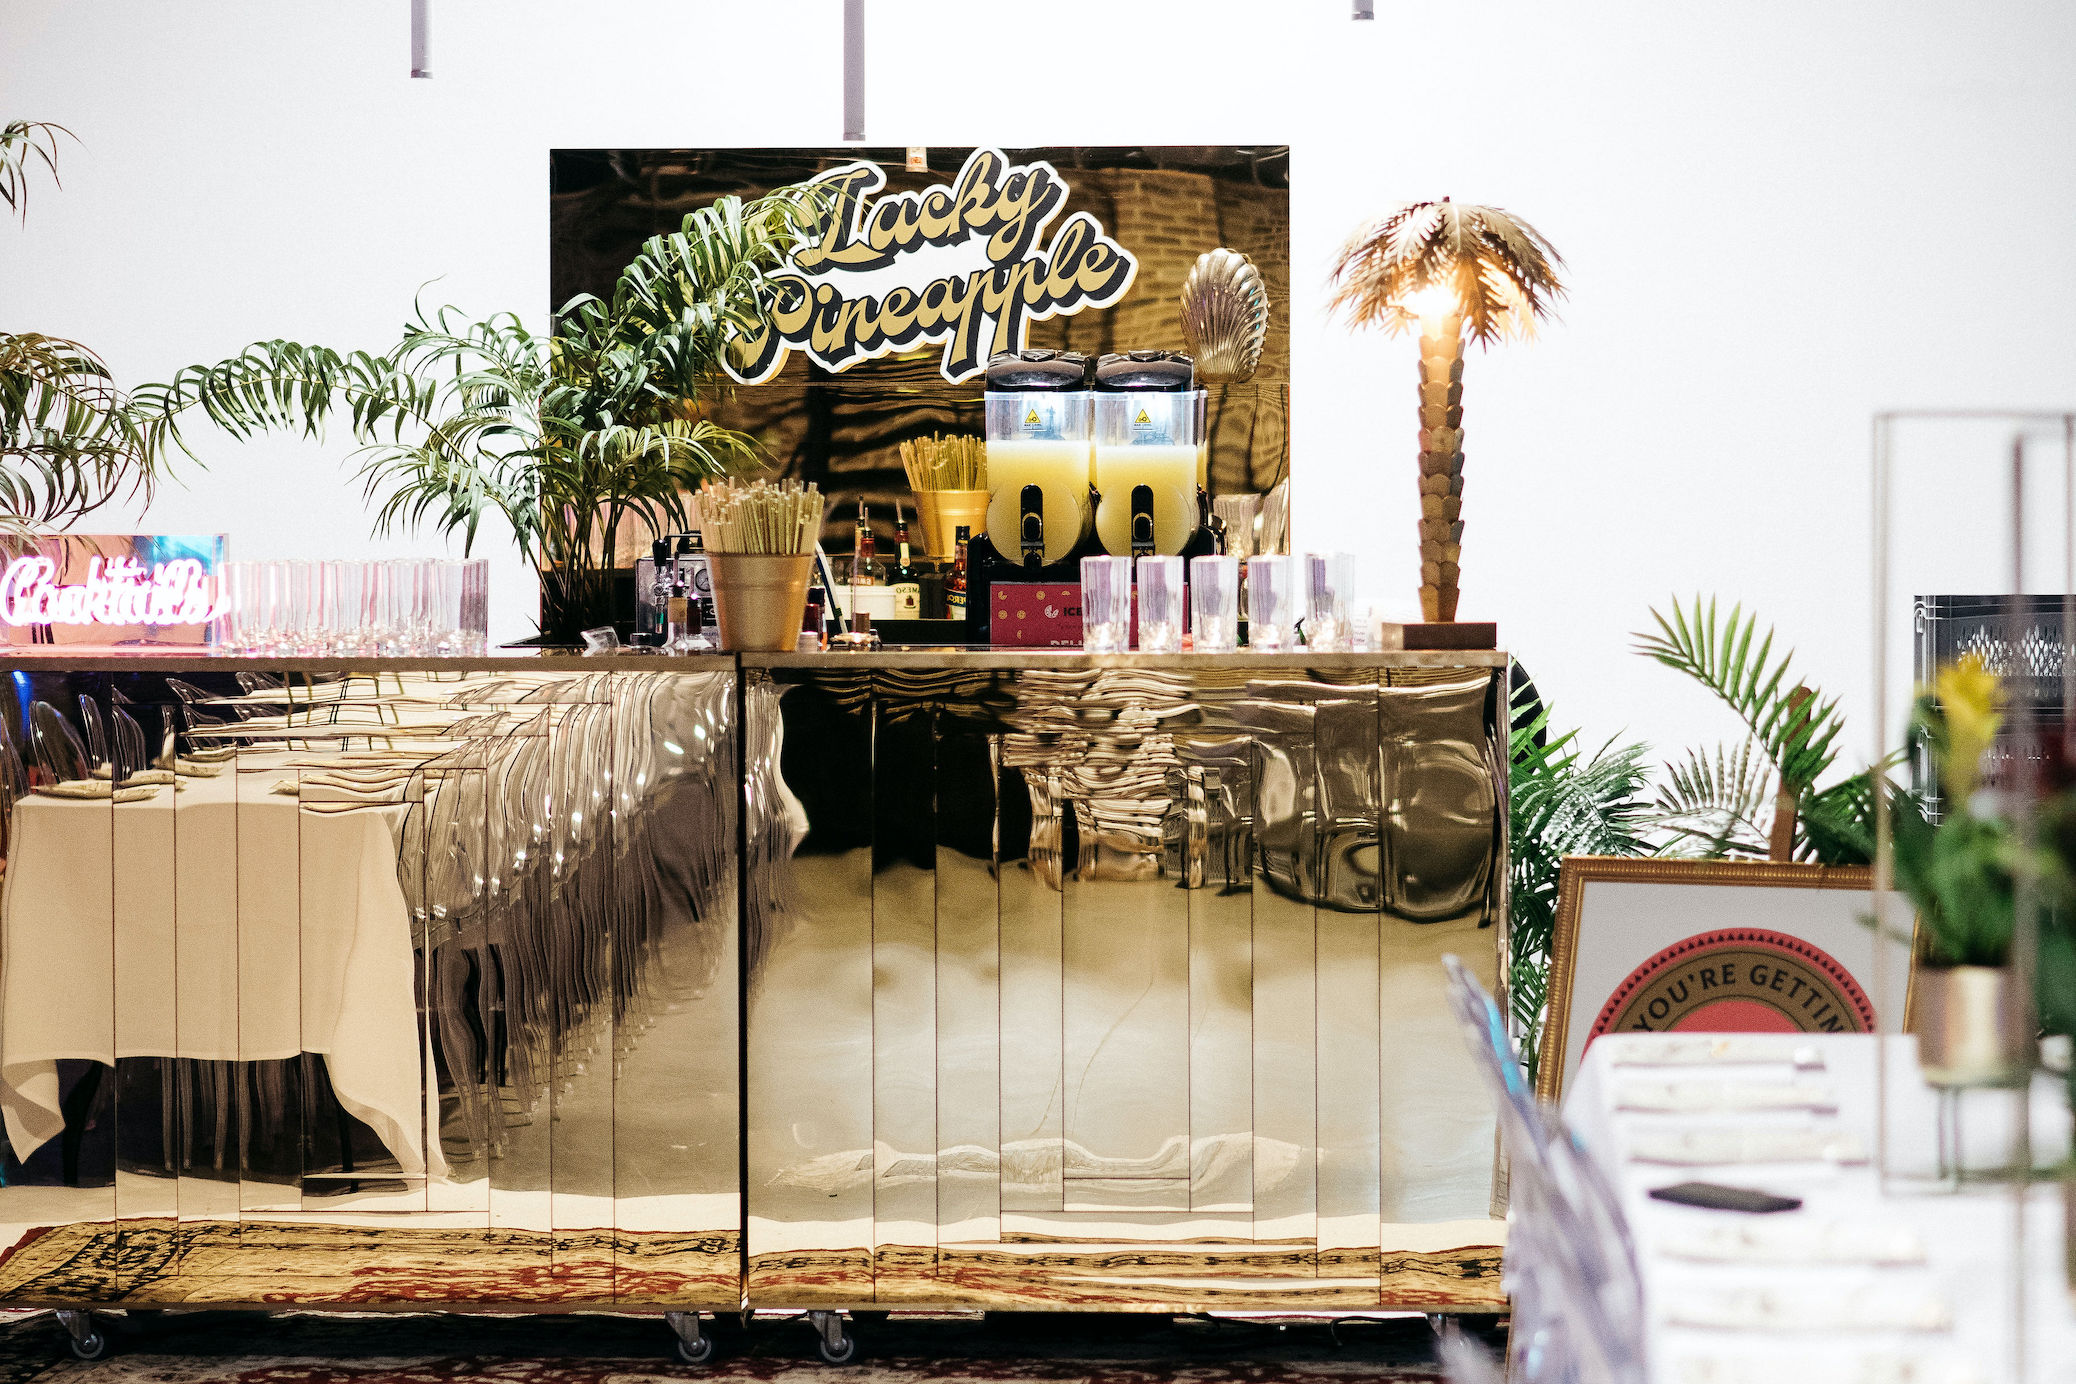 Lucky Pineapple Gold mirrored bar setup at Shoreditch Studios